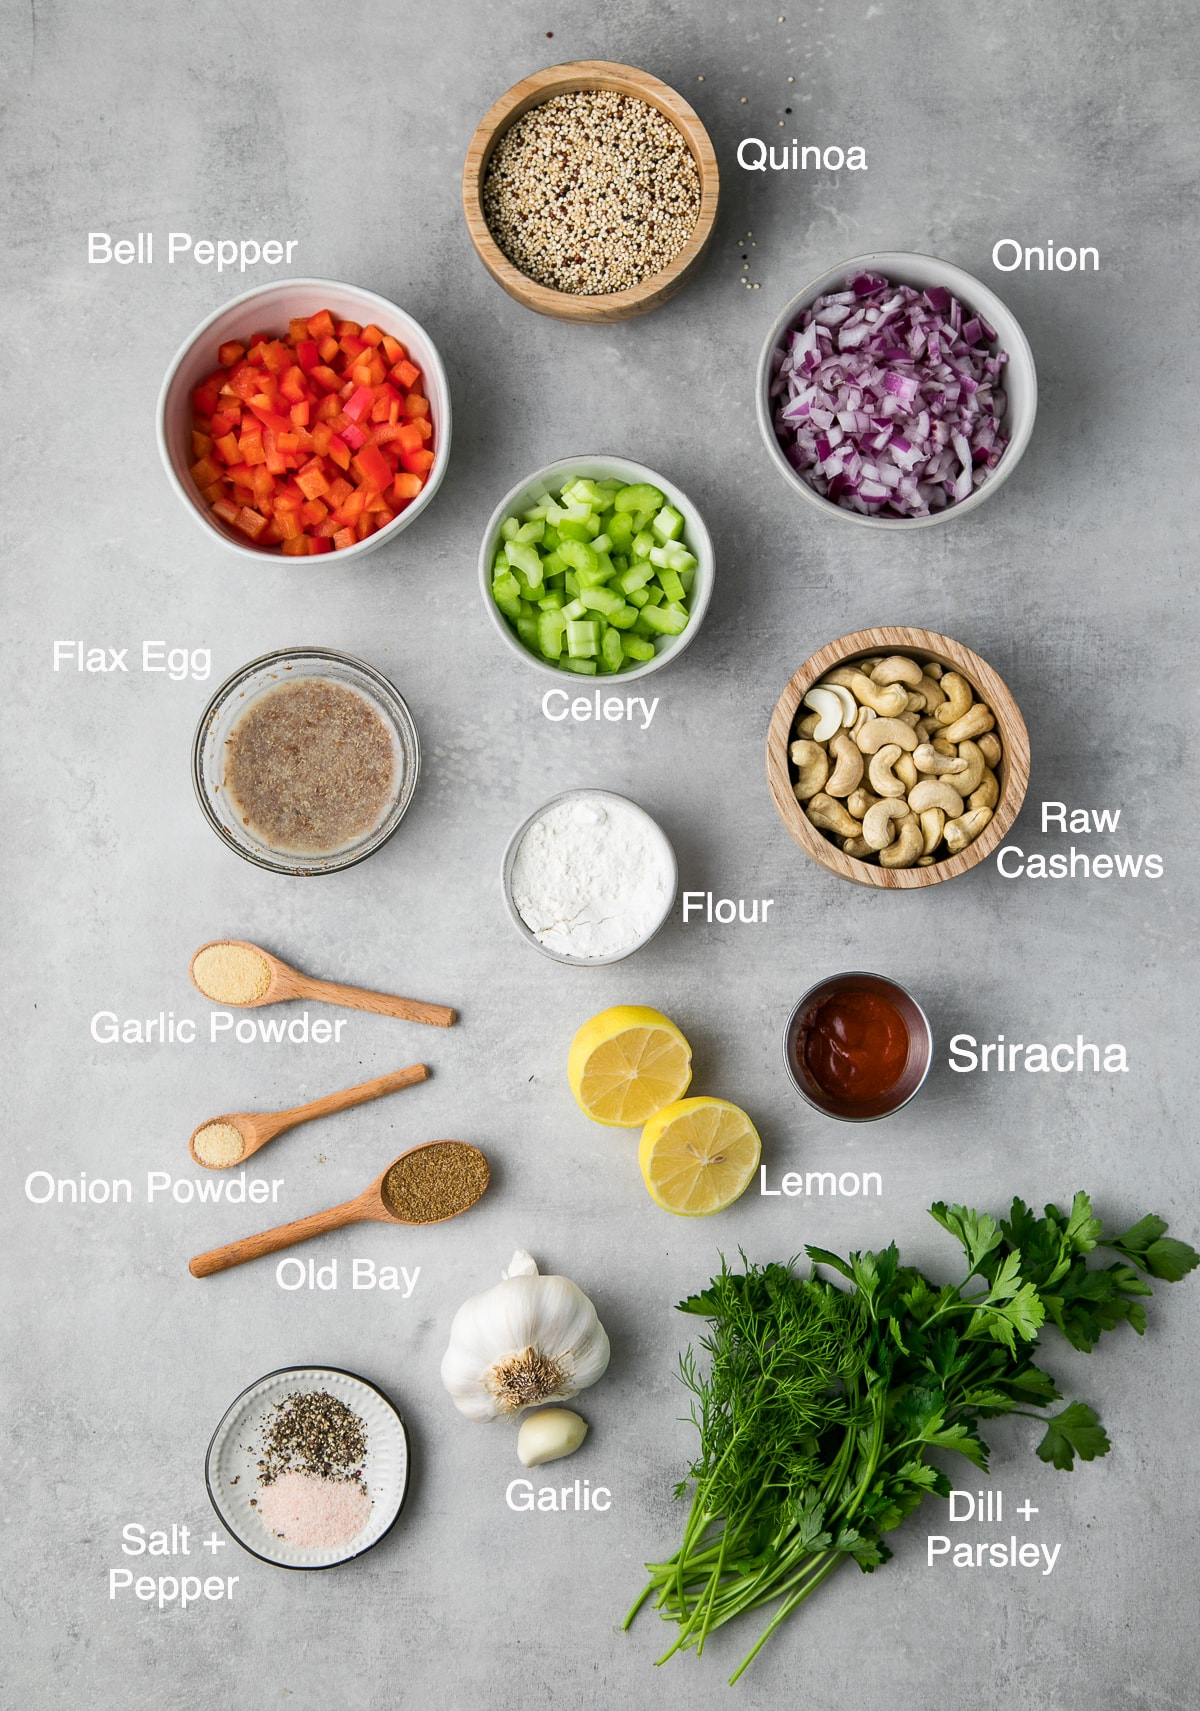 top down view of ingredients used to make crispy cajun quinoa cakes with lemon-dill remoulade.